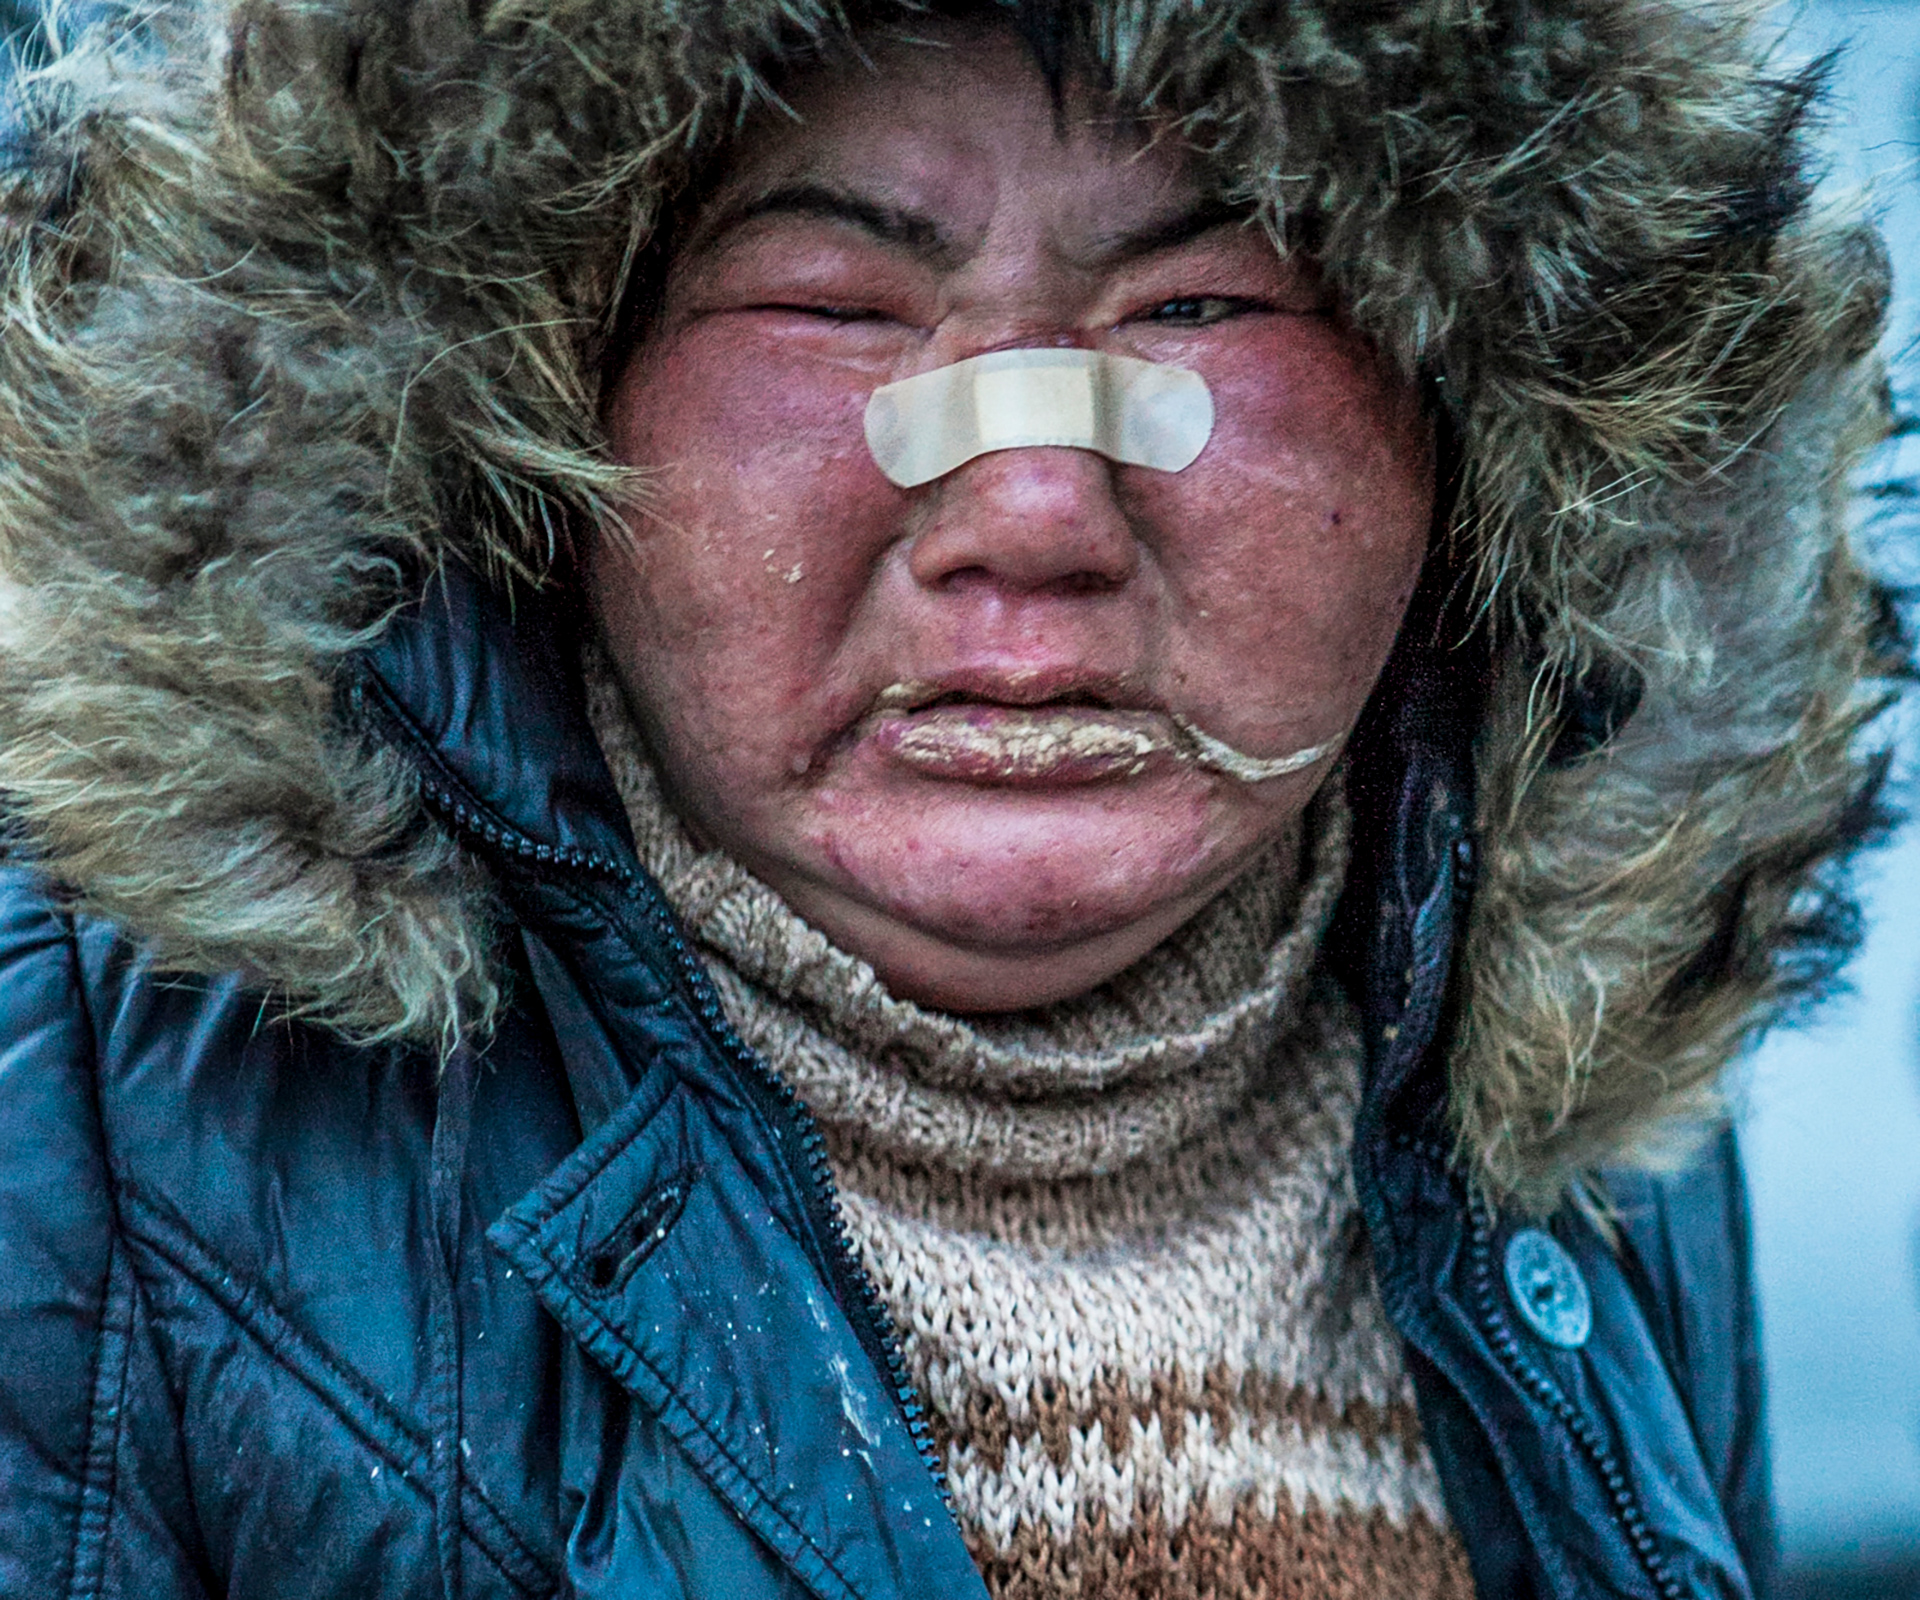 Homeless, Almaty, Kazakhstan, poverty, , cold, freezing, poor people, vagabonds, bum, trump